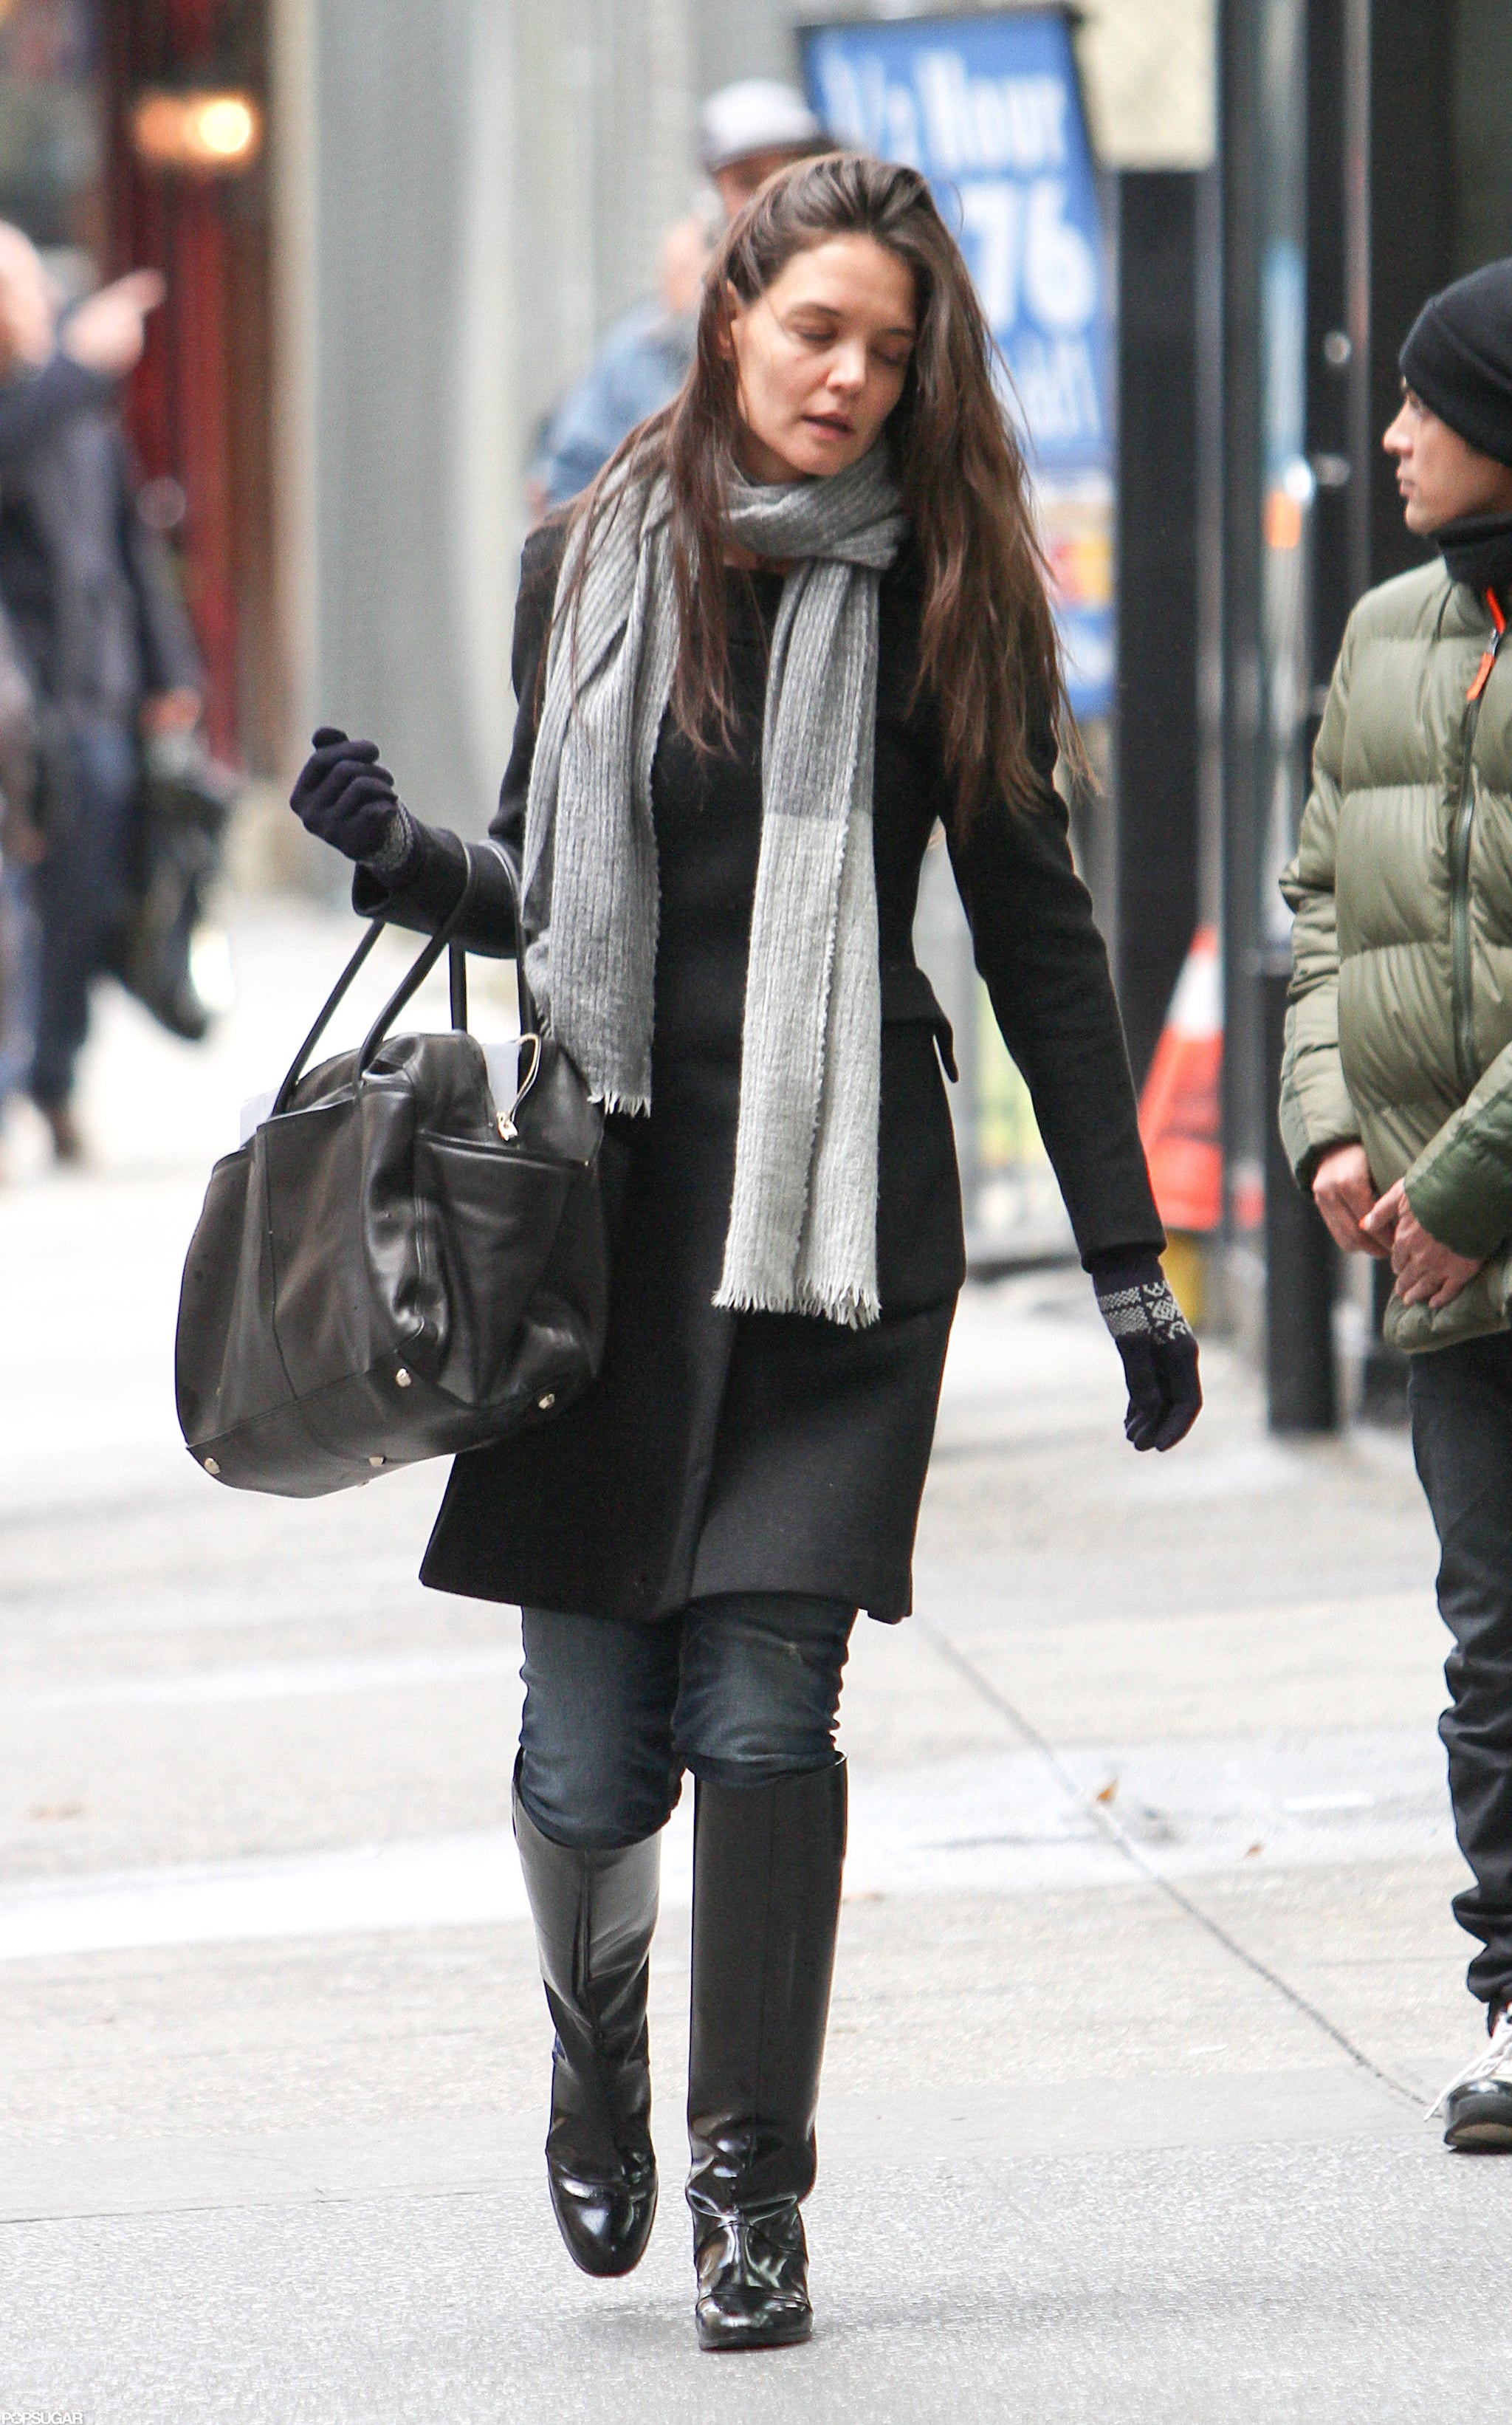 Katie Homes was out and about in NYC.